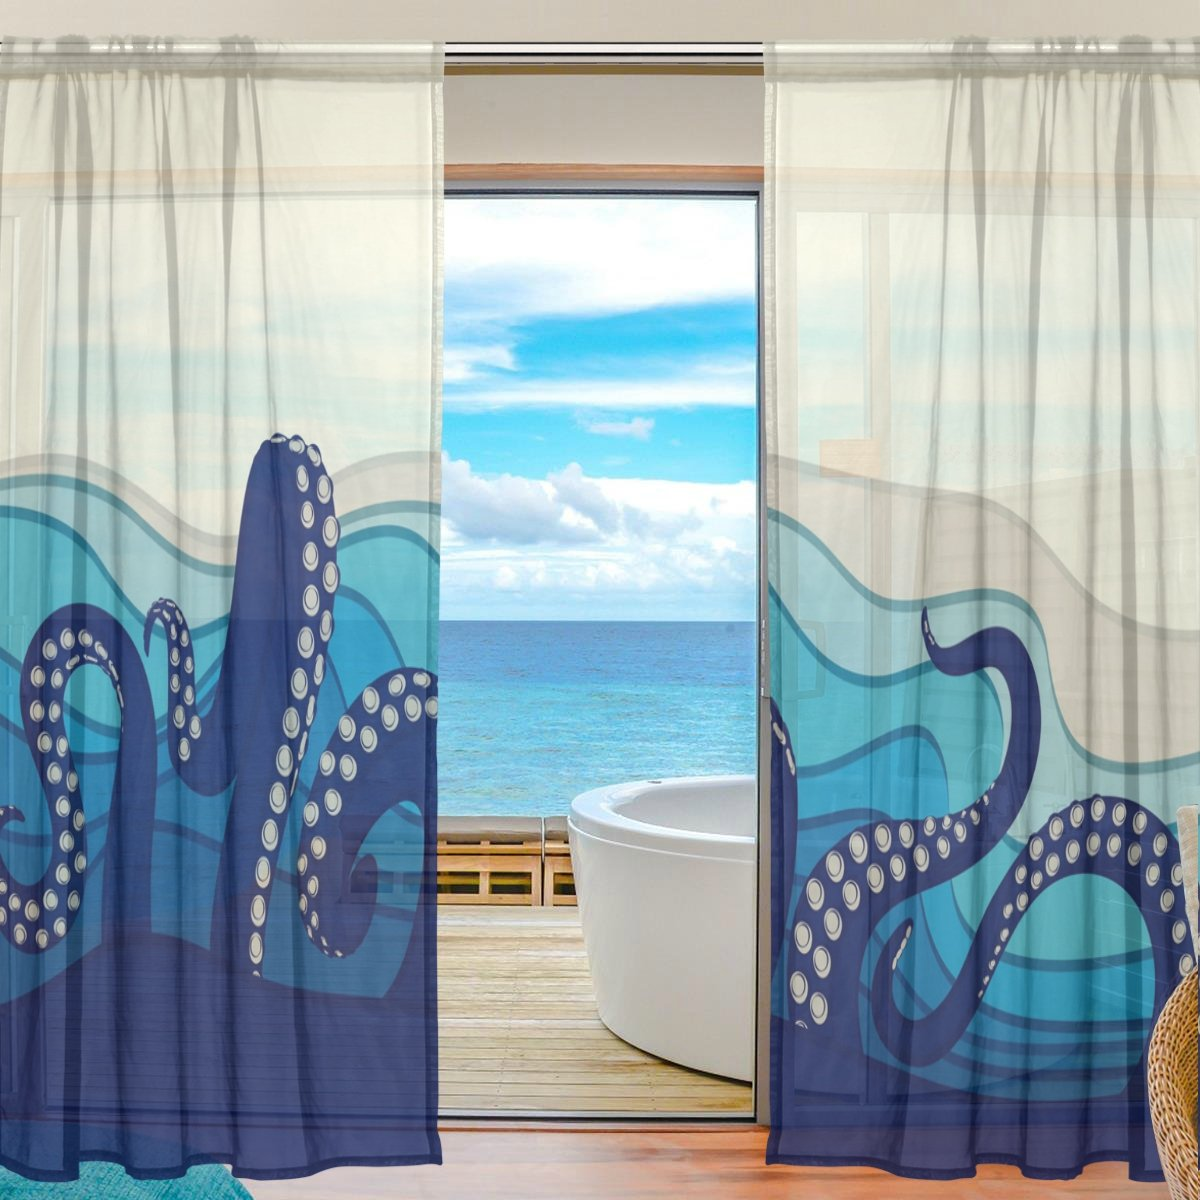 SEULIFE Window Sheer Curtain, Ocean Sea Animal Octopus Voile Curtain Drapes for Door Kitchen Living Room Bedroom 55x78 inches 2 Panels g2901664p113c127s169